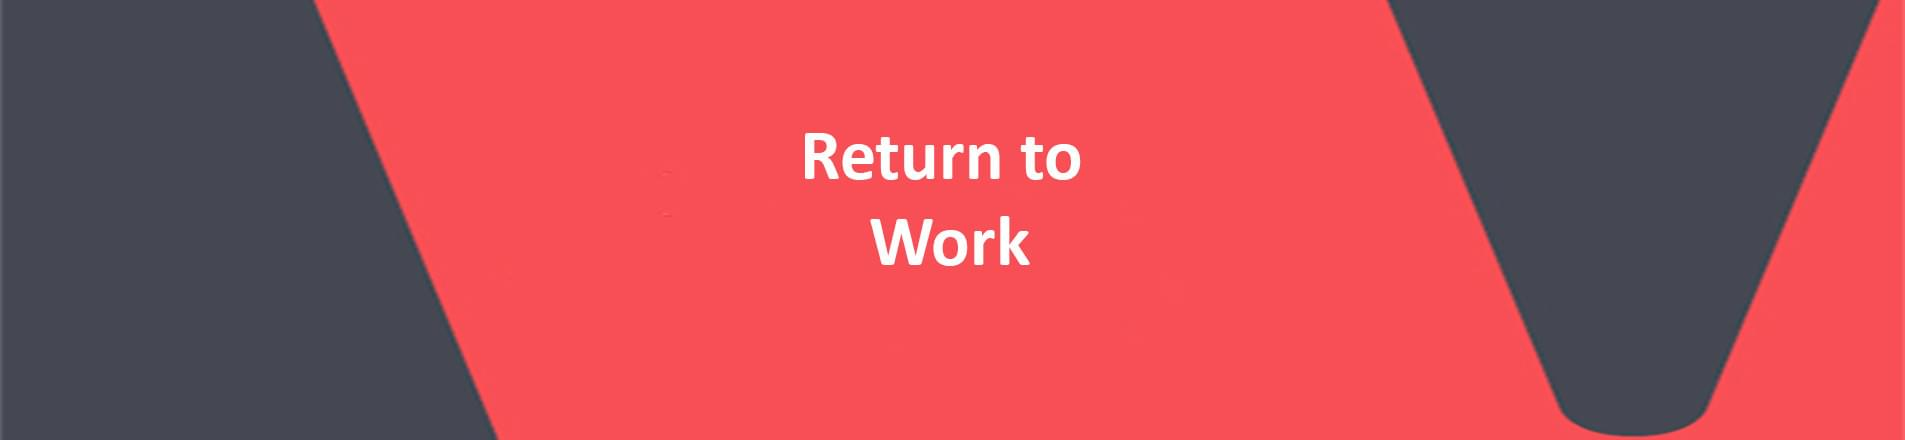 Red banner with white text reading return to work